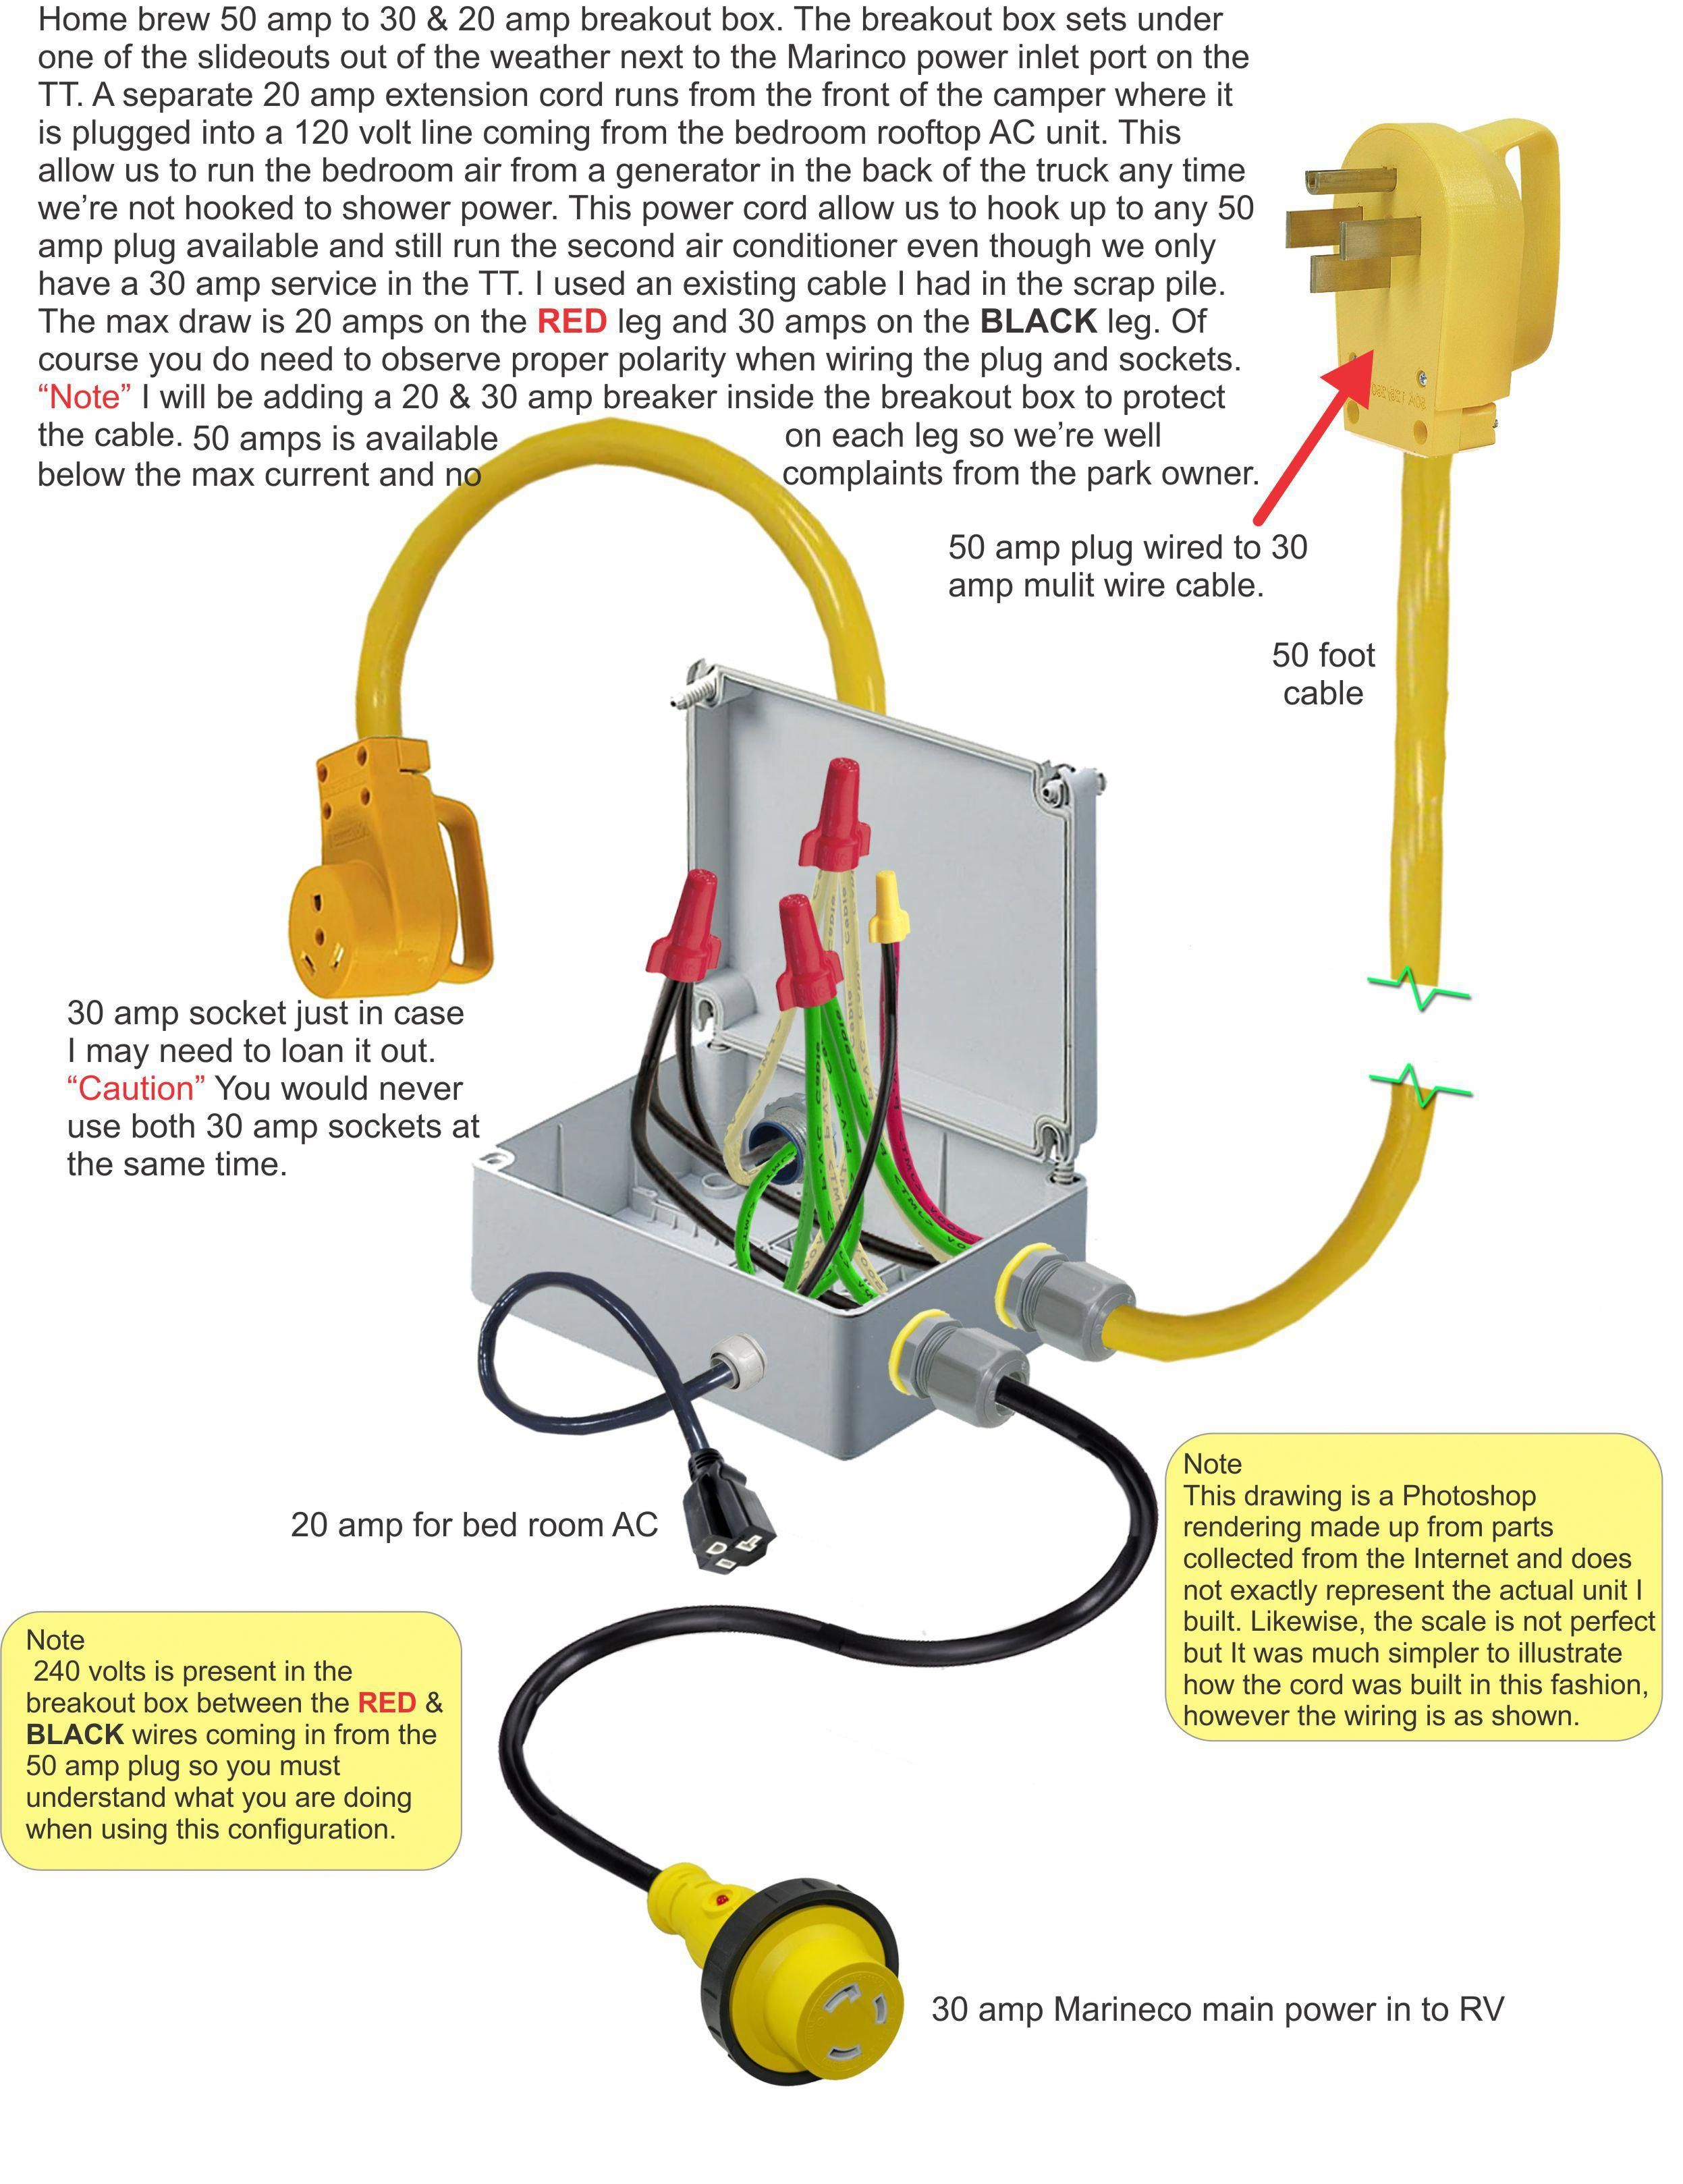 50 Amp Rv Plug Wiring Diagram More Details Can Be Found By Clicking On The Image Campingideas Rv Camping Checklist Camping Advice Power Inlets